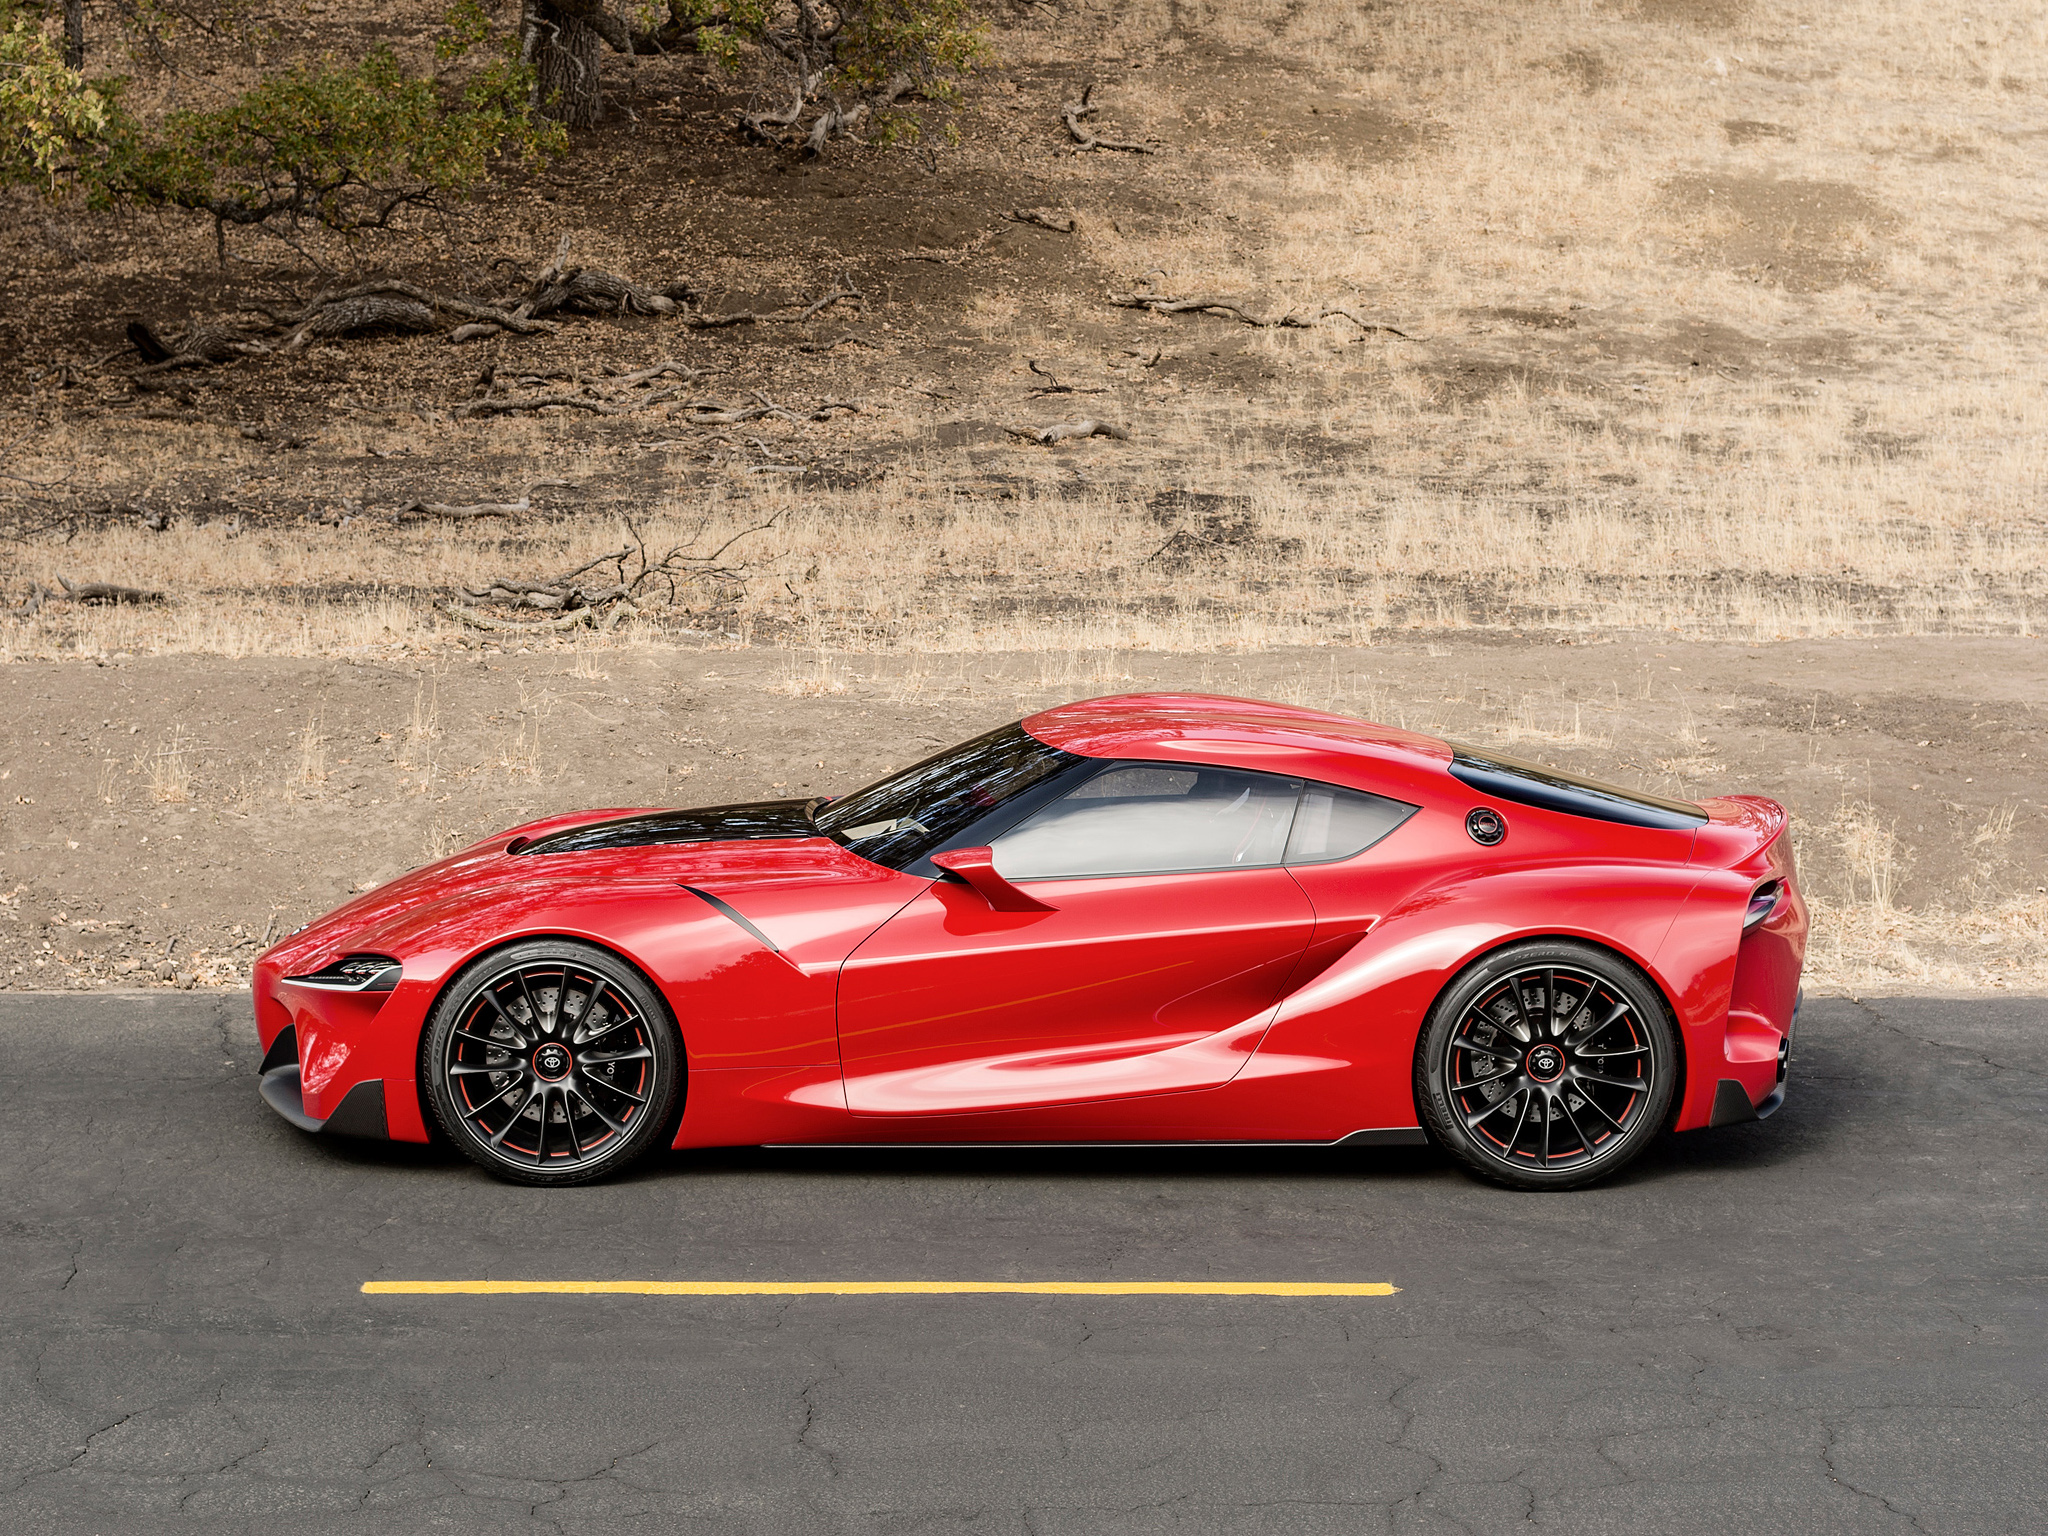 2014 Toyota ft 1 Concept